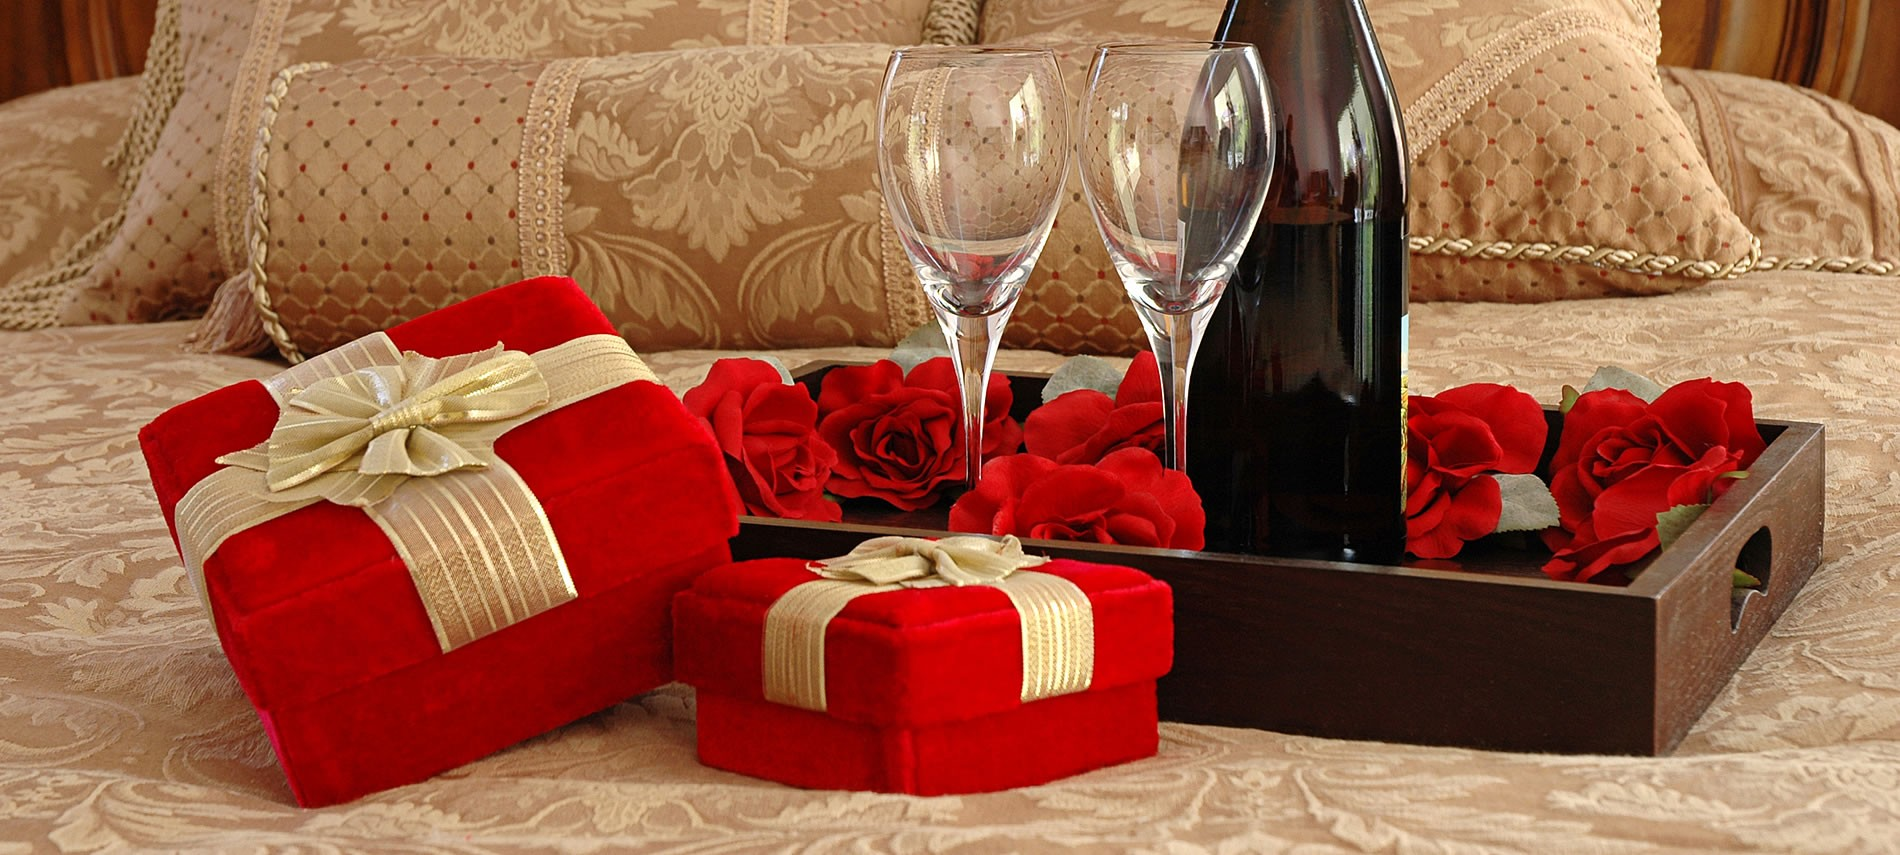 Red velvet boxes with decorative bows next to a dark wooded bed tray with wine, wine glasses and red roses, all set upon a tan bed.